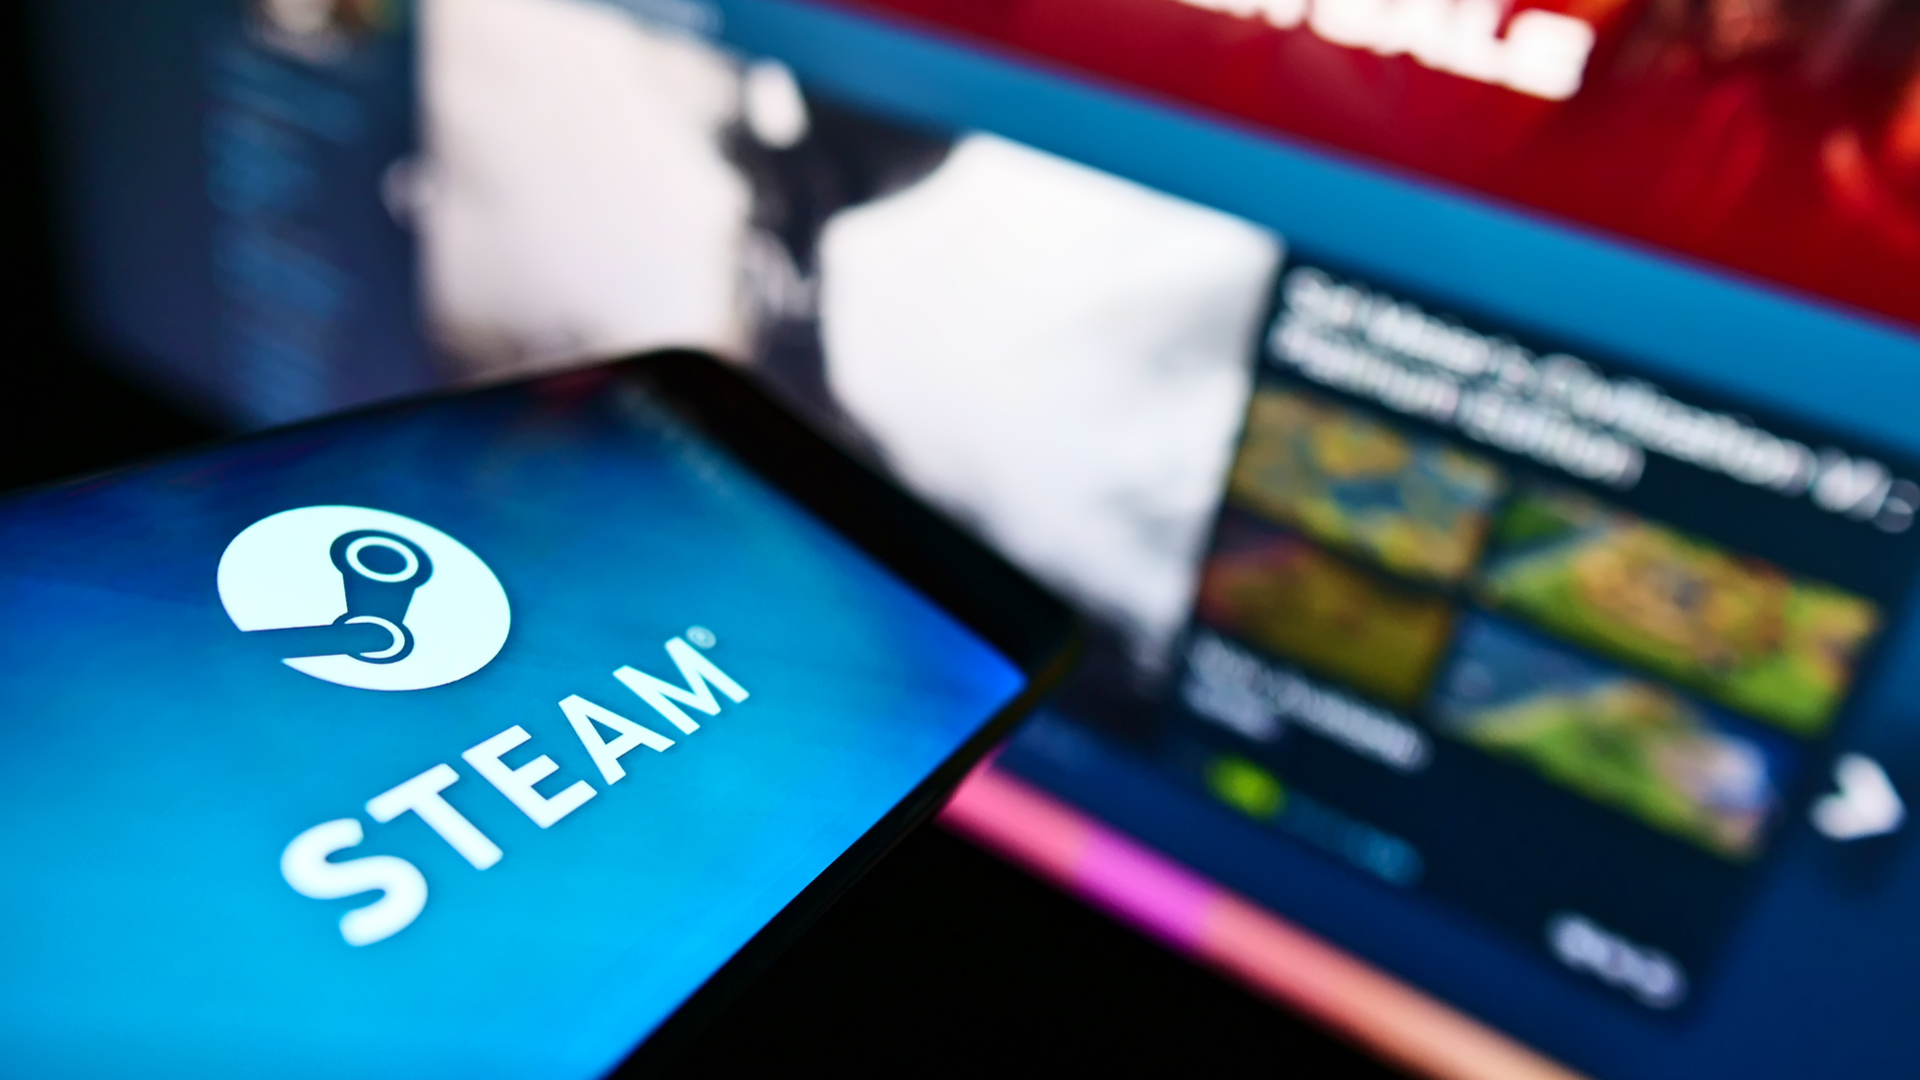 Steam logo and library